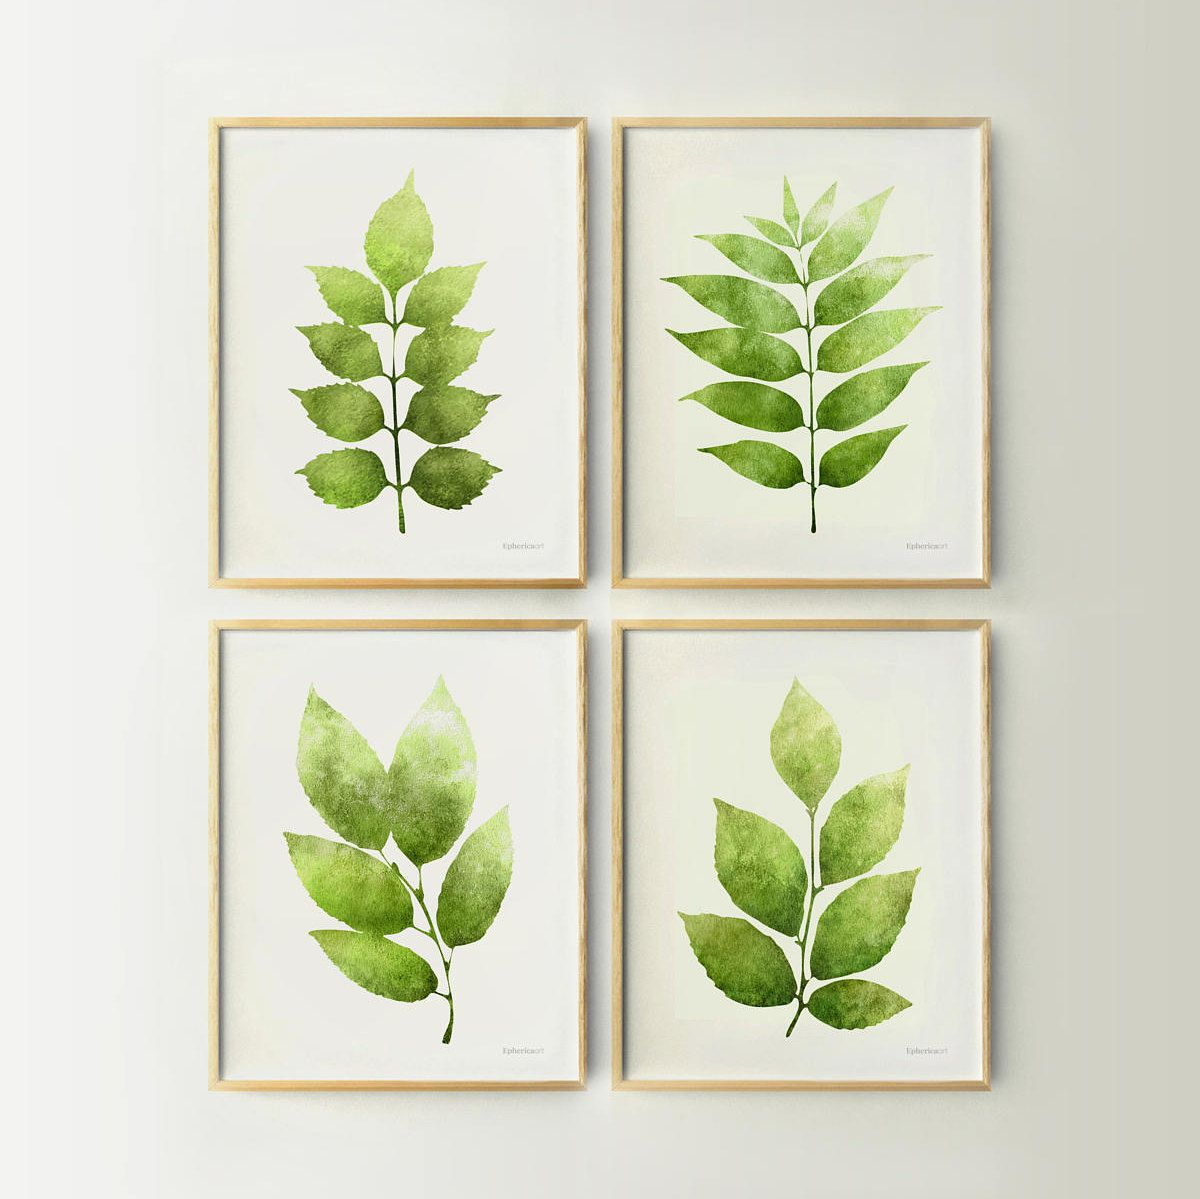 4 Piece Wall Art Green Leaves Prints Set Of 4 Prints Kitchen Printable Wall Art Plants Prints Galler Botanical Prints Printable Art Prints Gallery Wall Prints